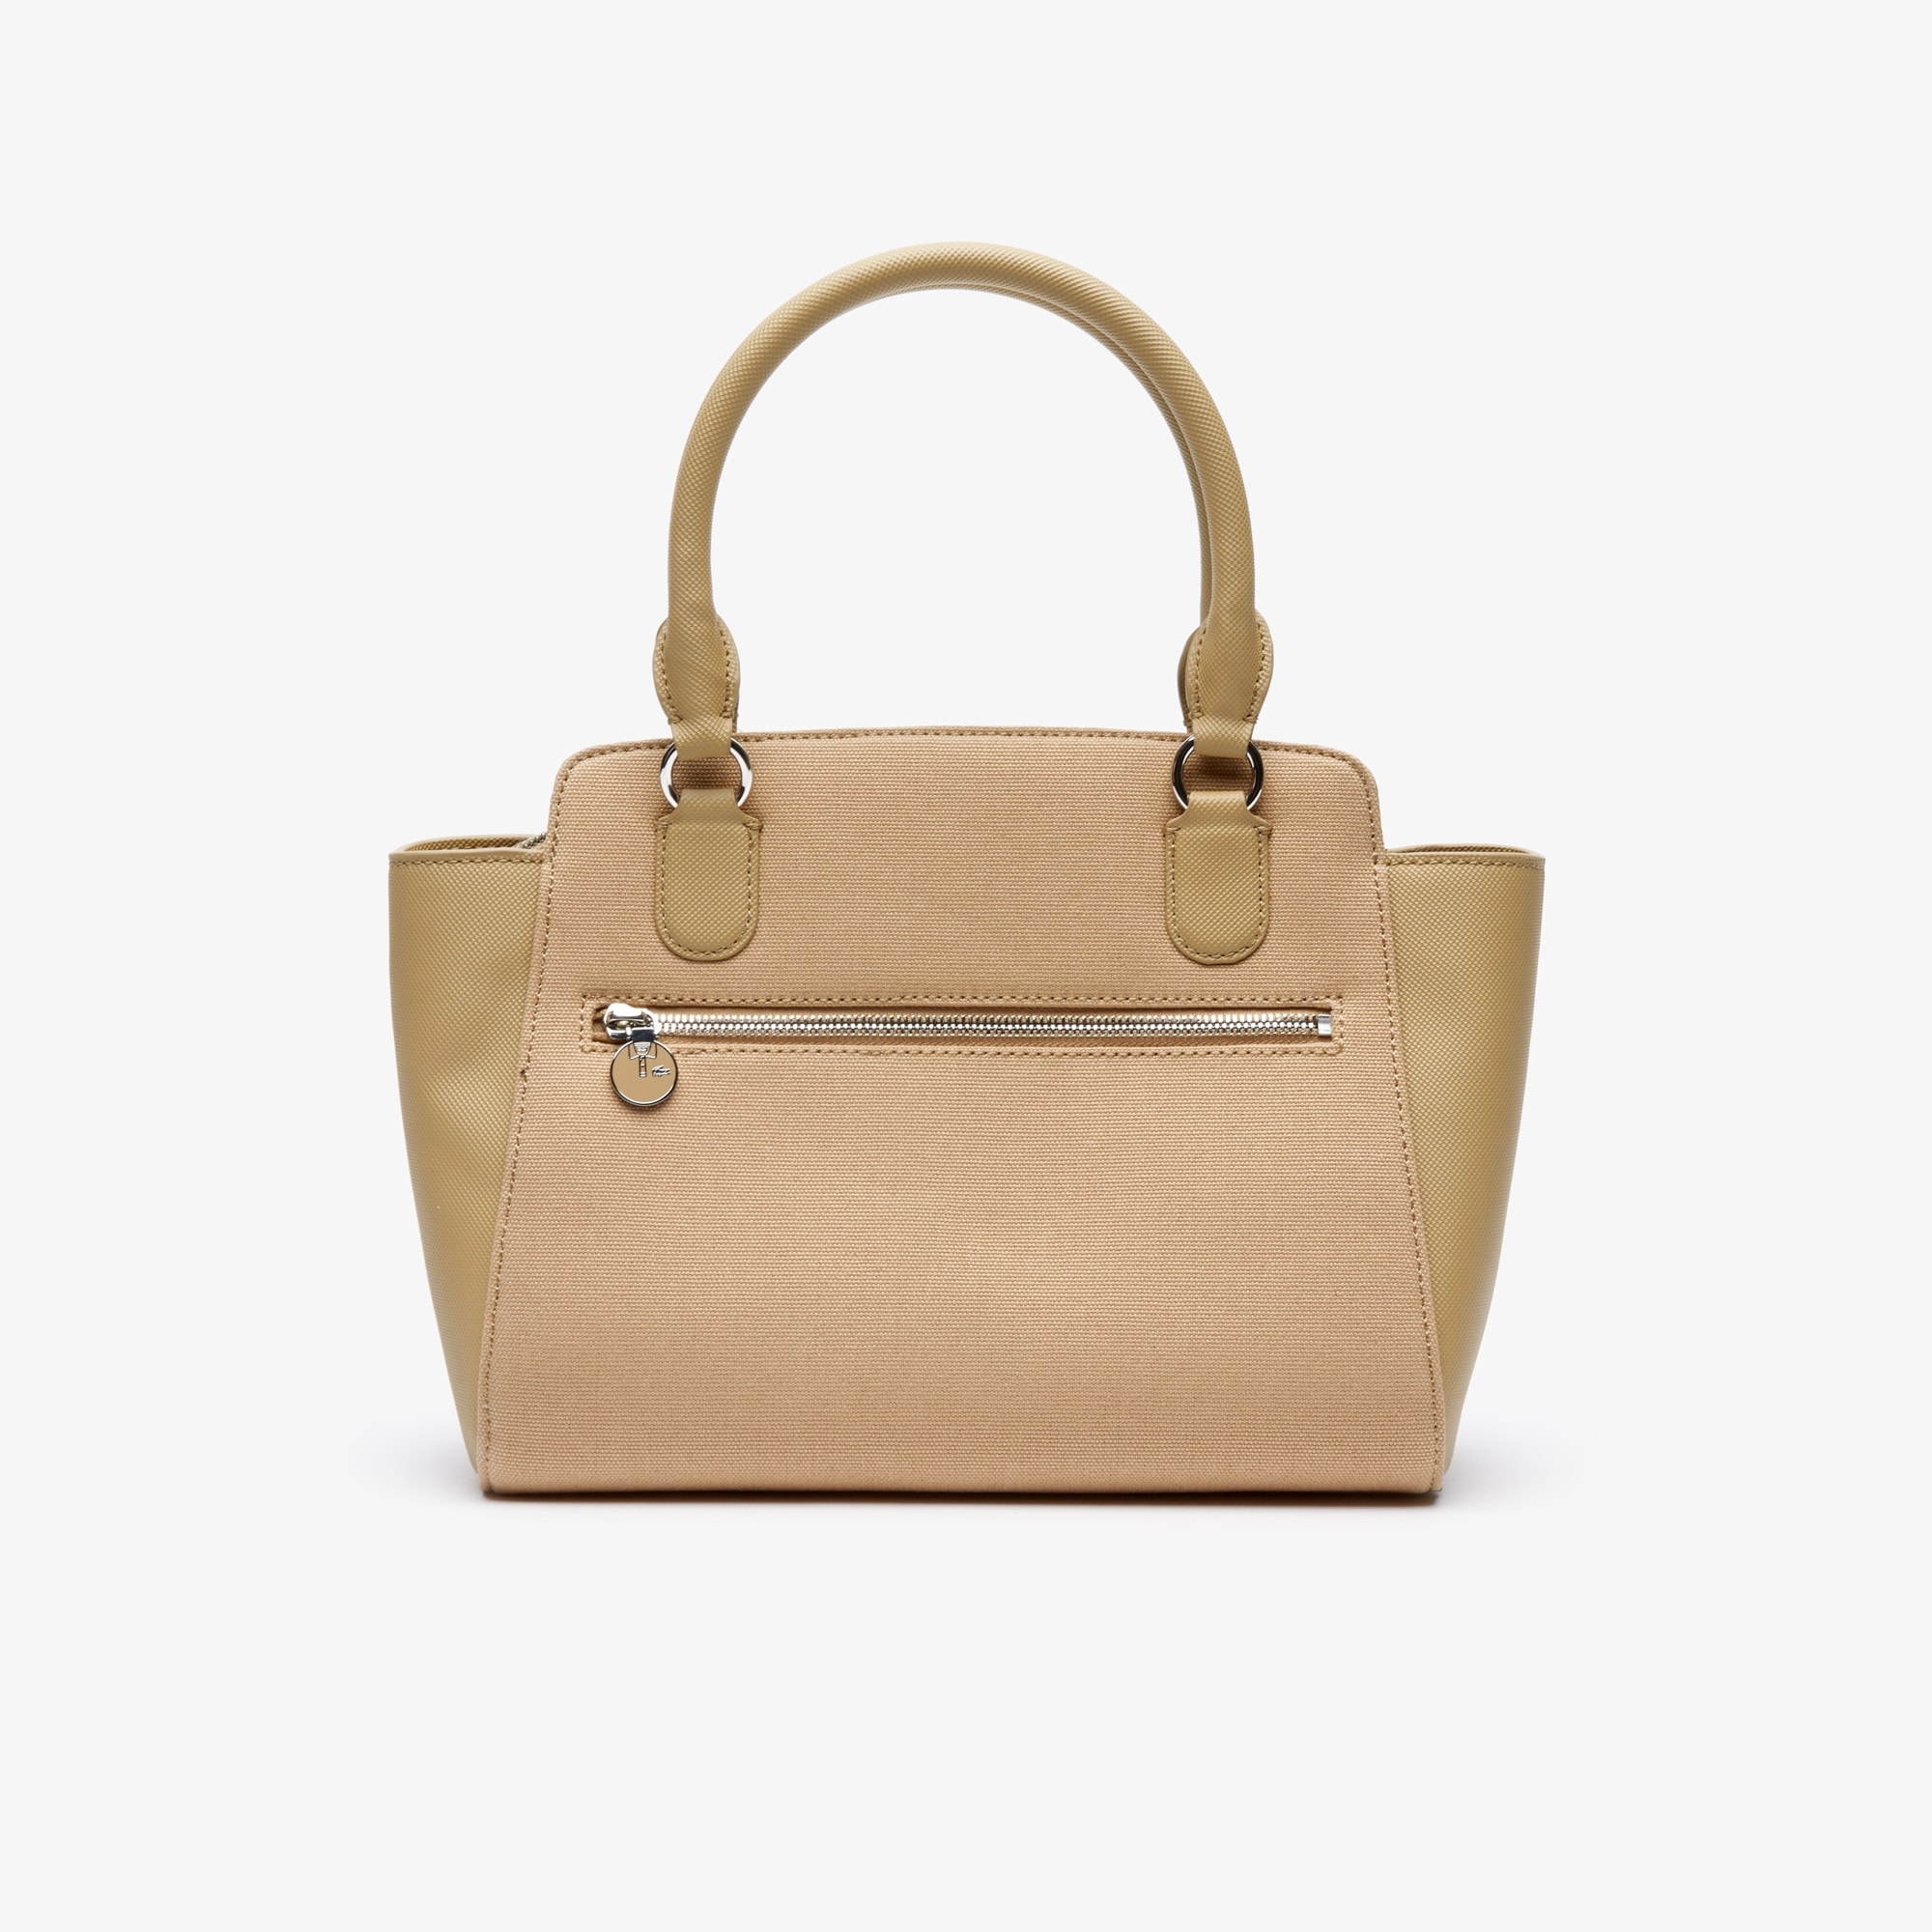 Women's Daily Classic Gusseted Tote Bag